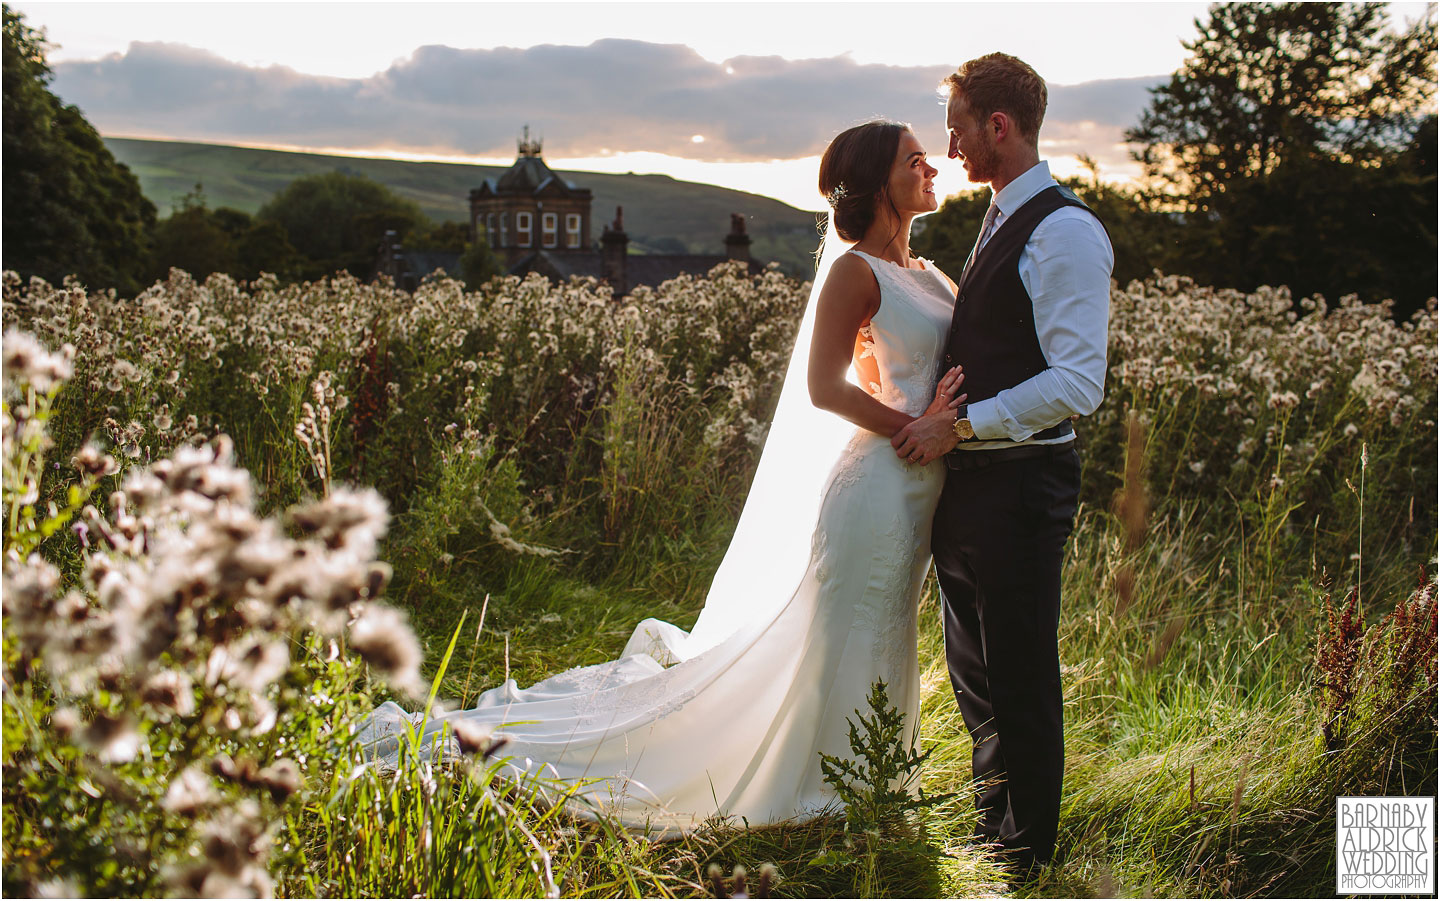 Crow Hill Marsden Wedding Photography, West Yorkshire Country House Wedding, Barnaby Aldrick Wedding Photography, Crow Hill Photographer, West Yorkshire Wedding Photographer